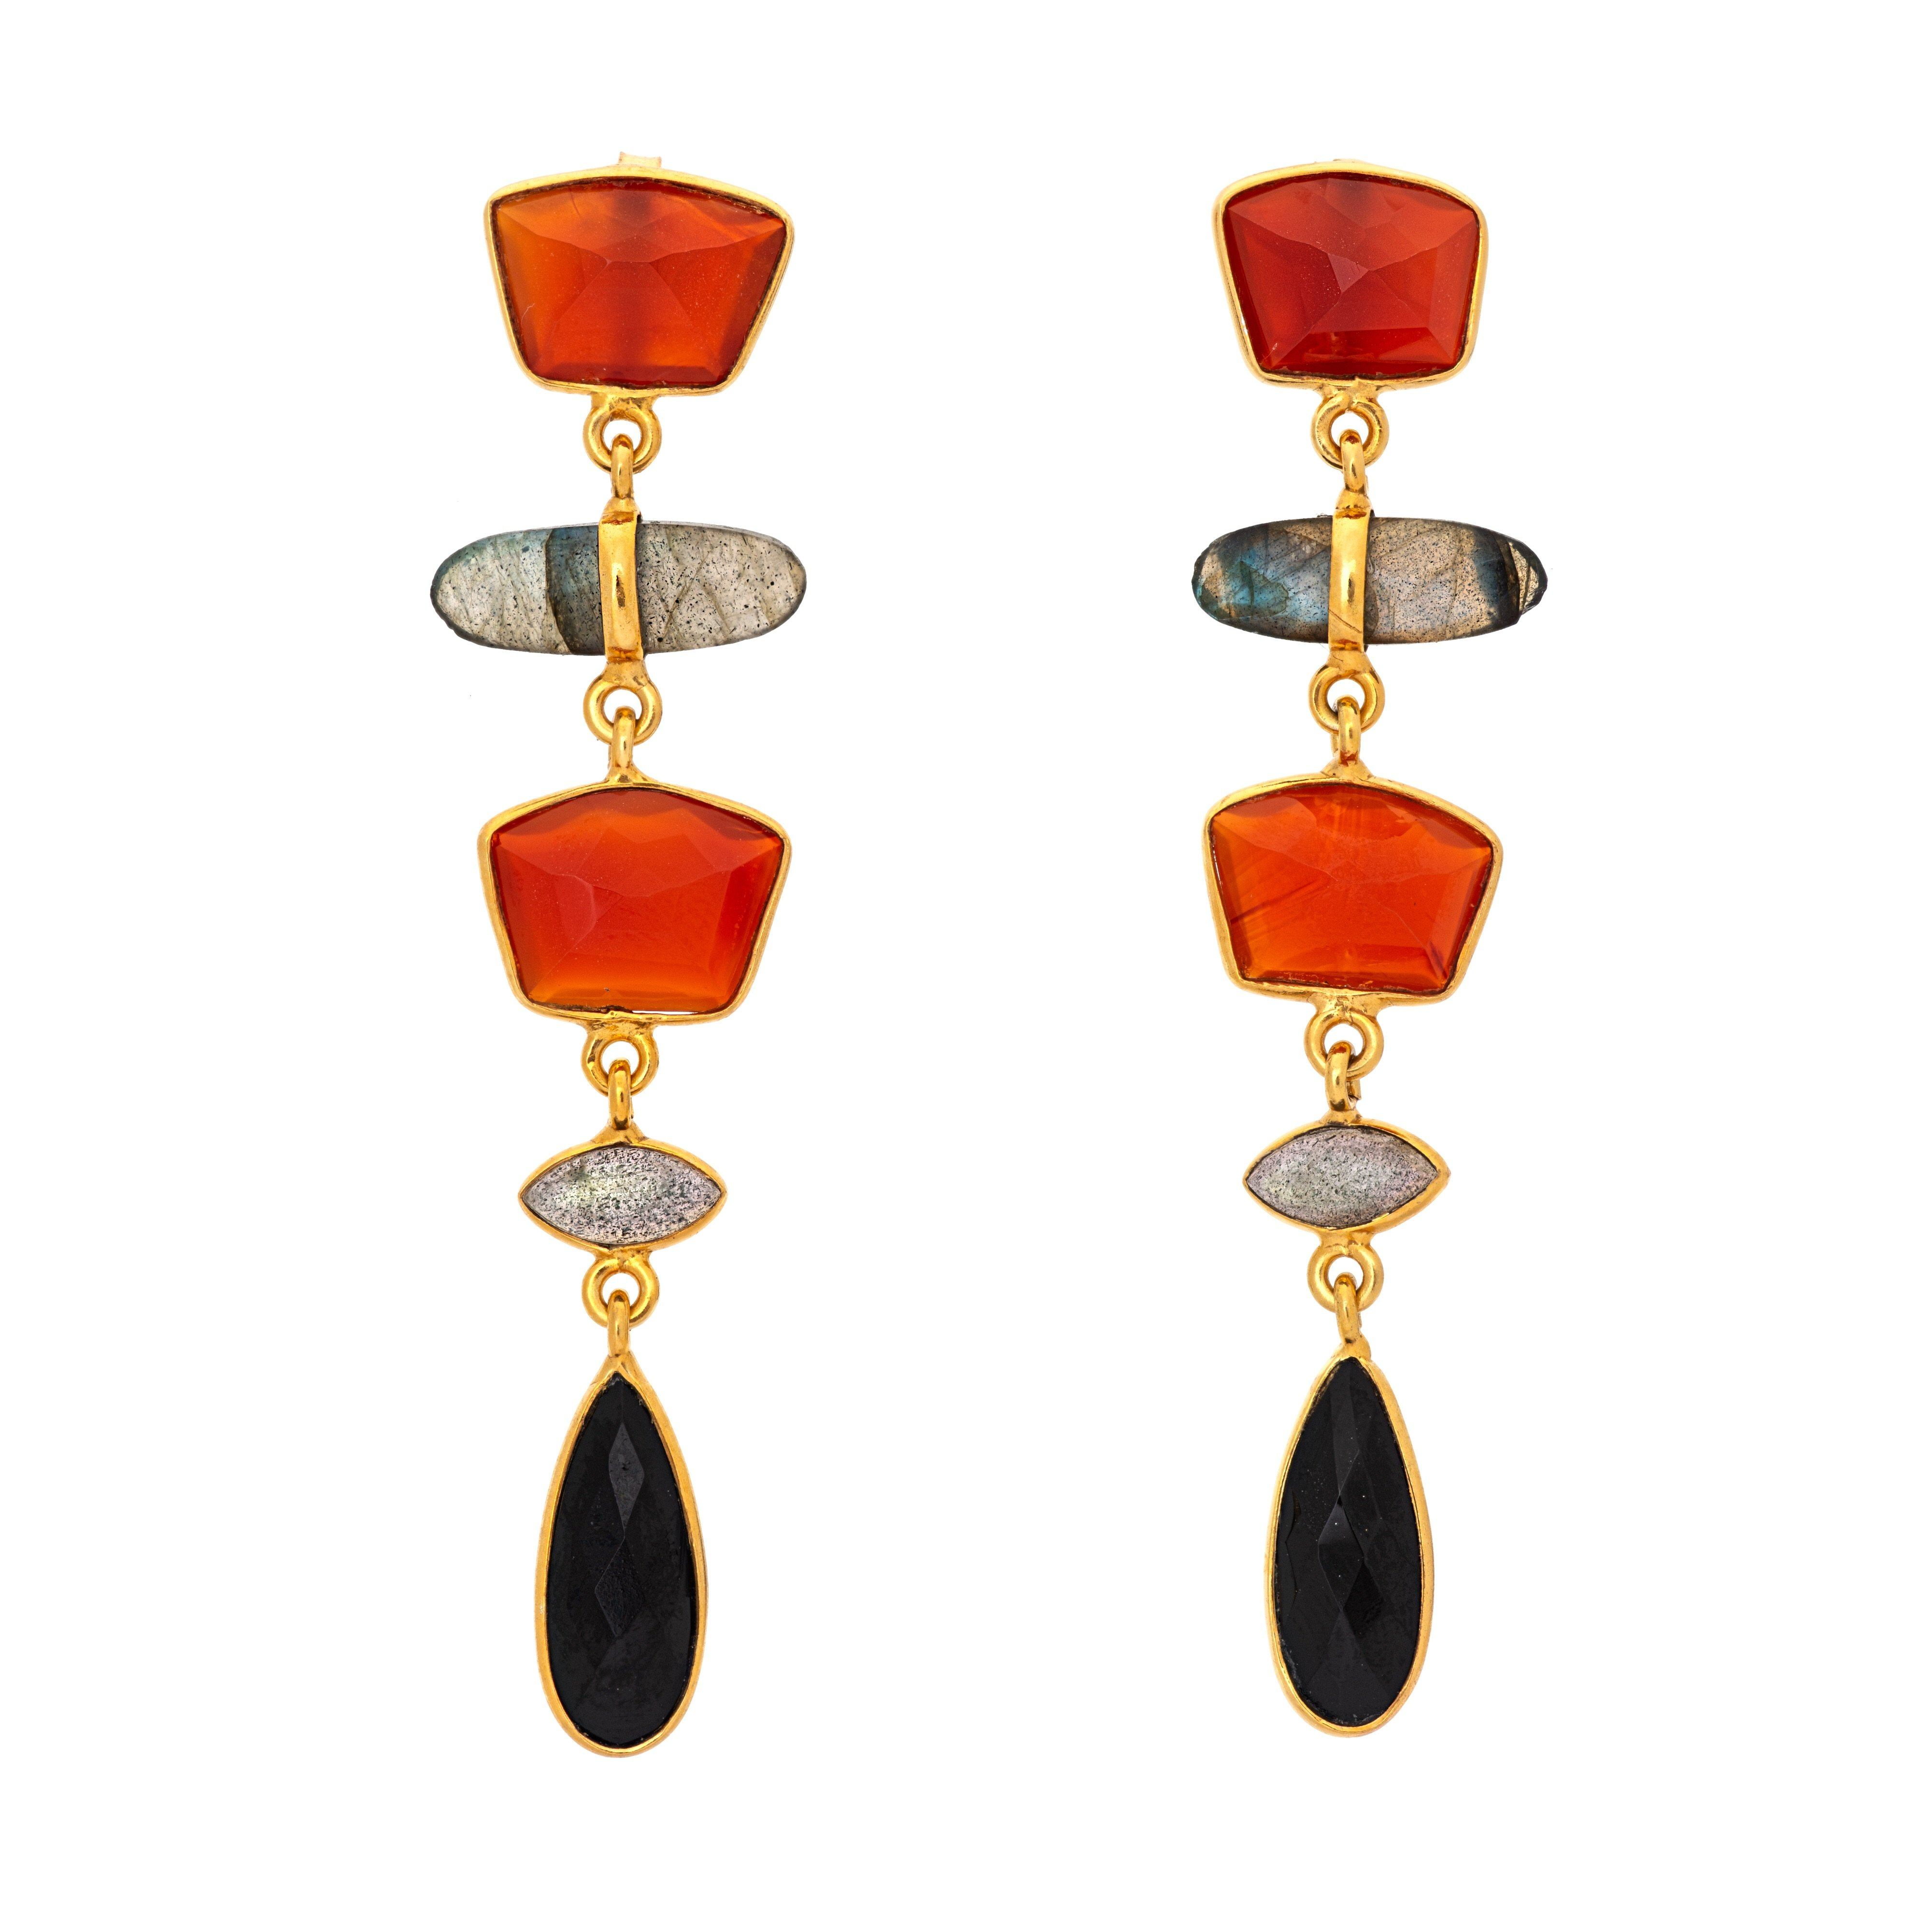 UDAIPUR onyx winter earrings - MadamSiam